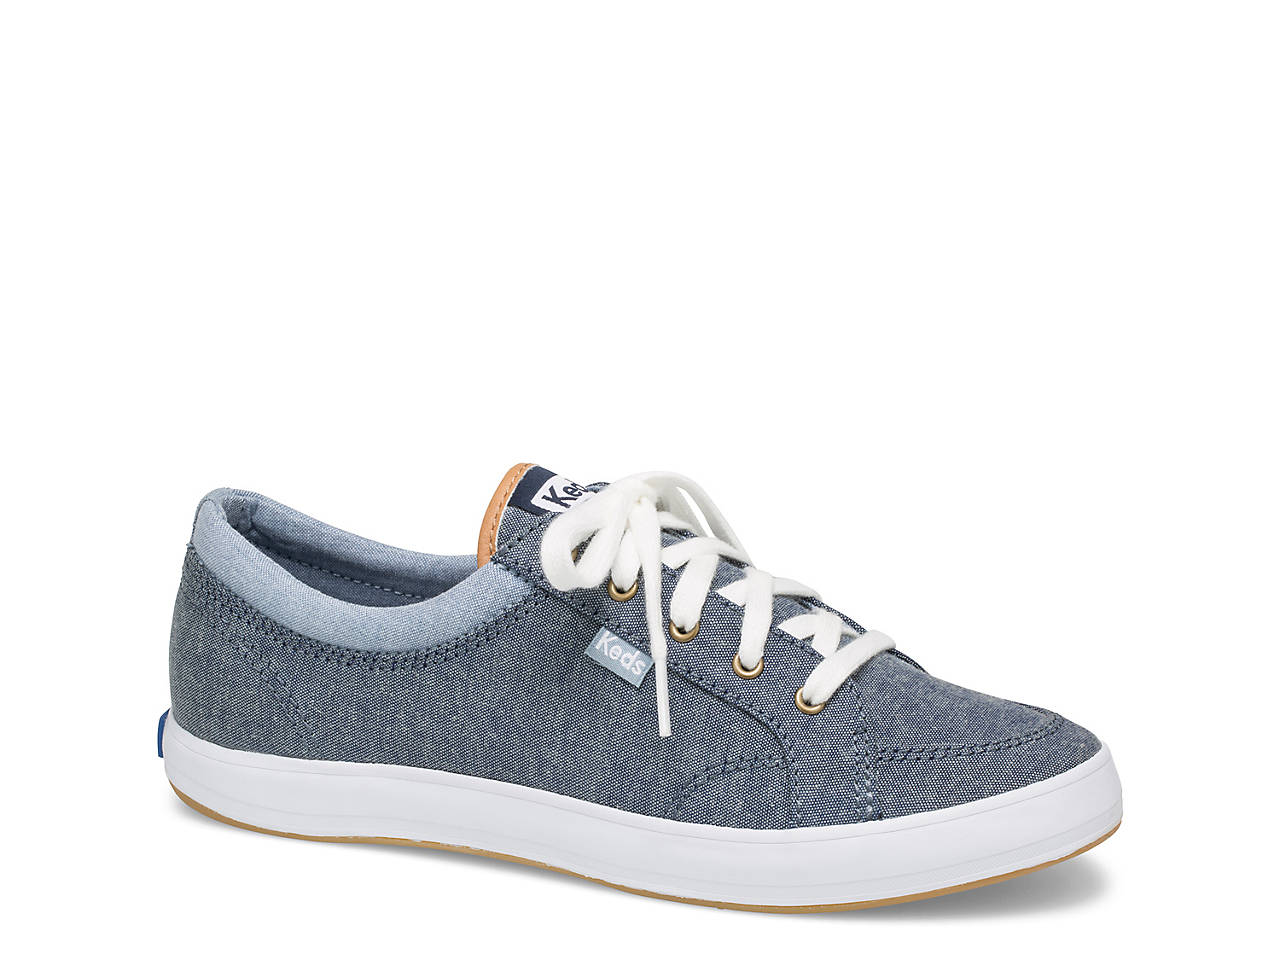 80657cc5ff7 Keds Center Sneaker - Women s Women s Shoes